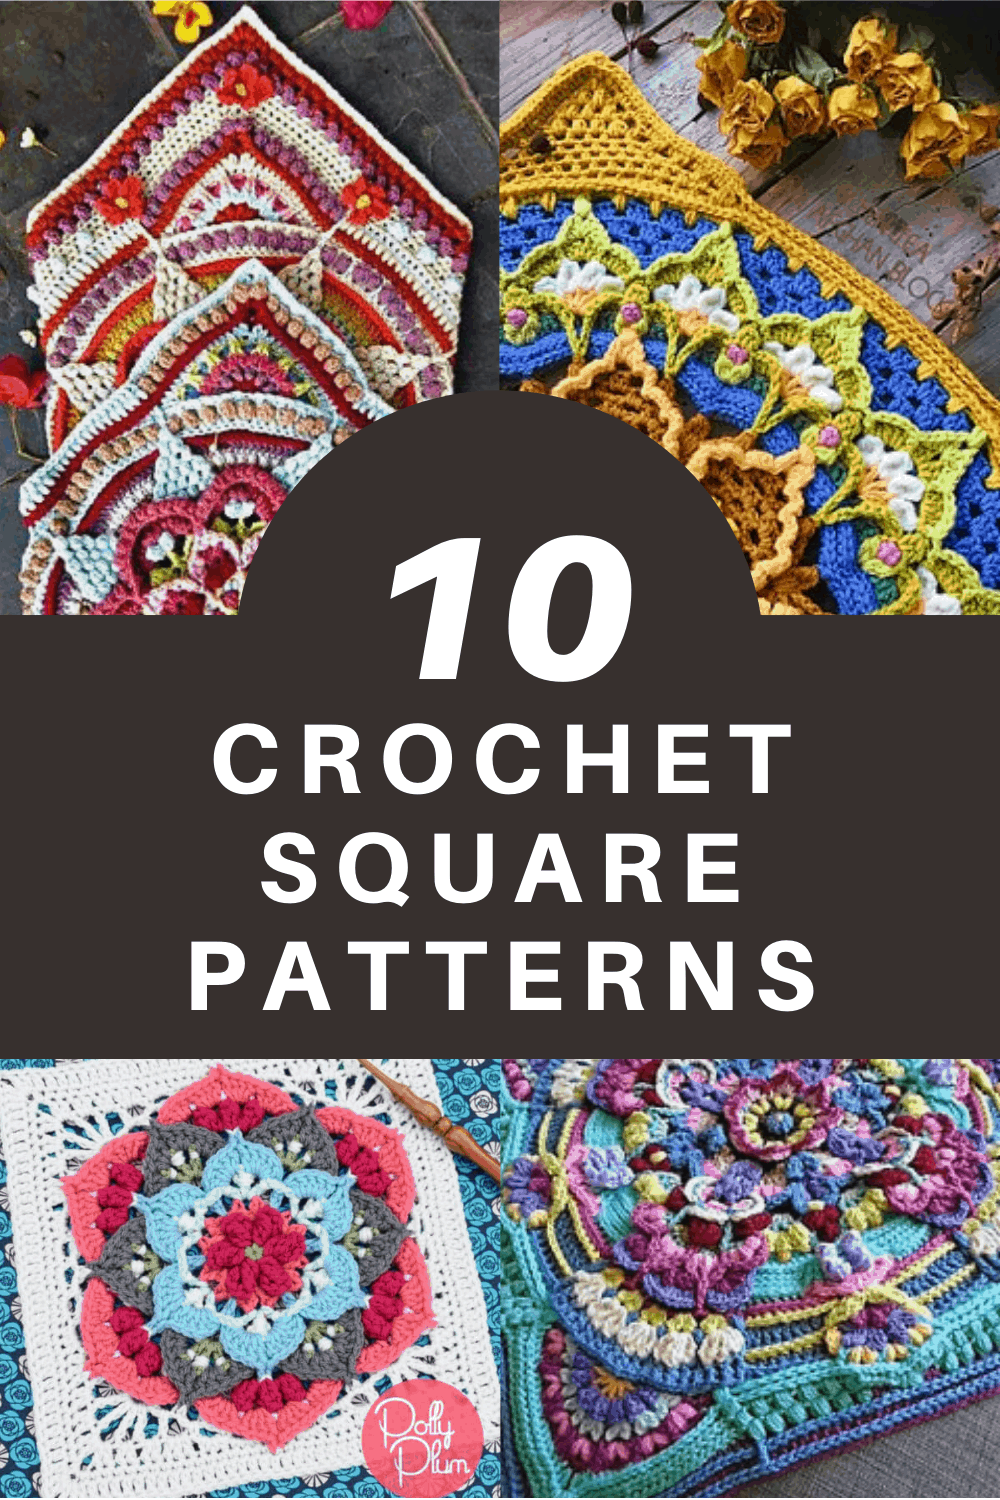 Challenge yourself with one of these crochet square patterns than can turn into stunning afghans or cushions that make thoughtful handmade gifts for loved ones!